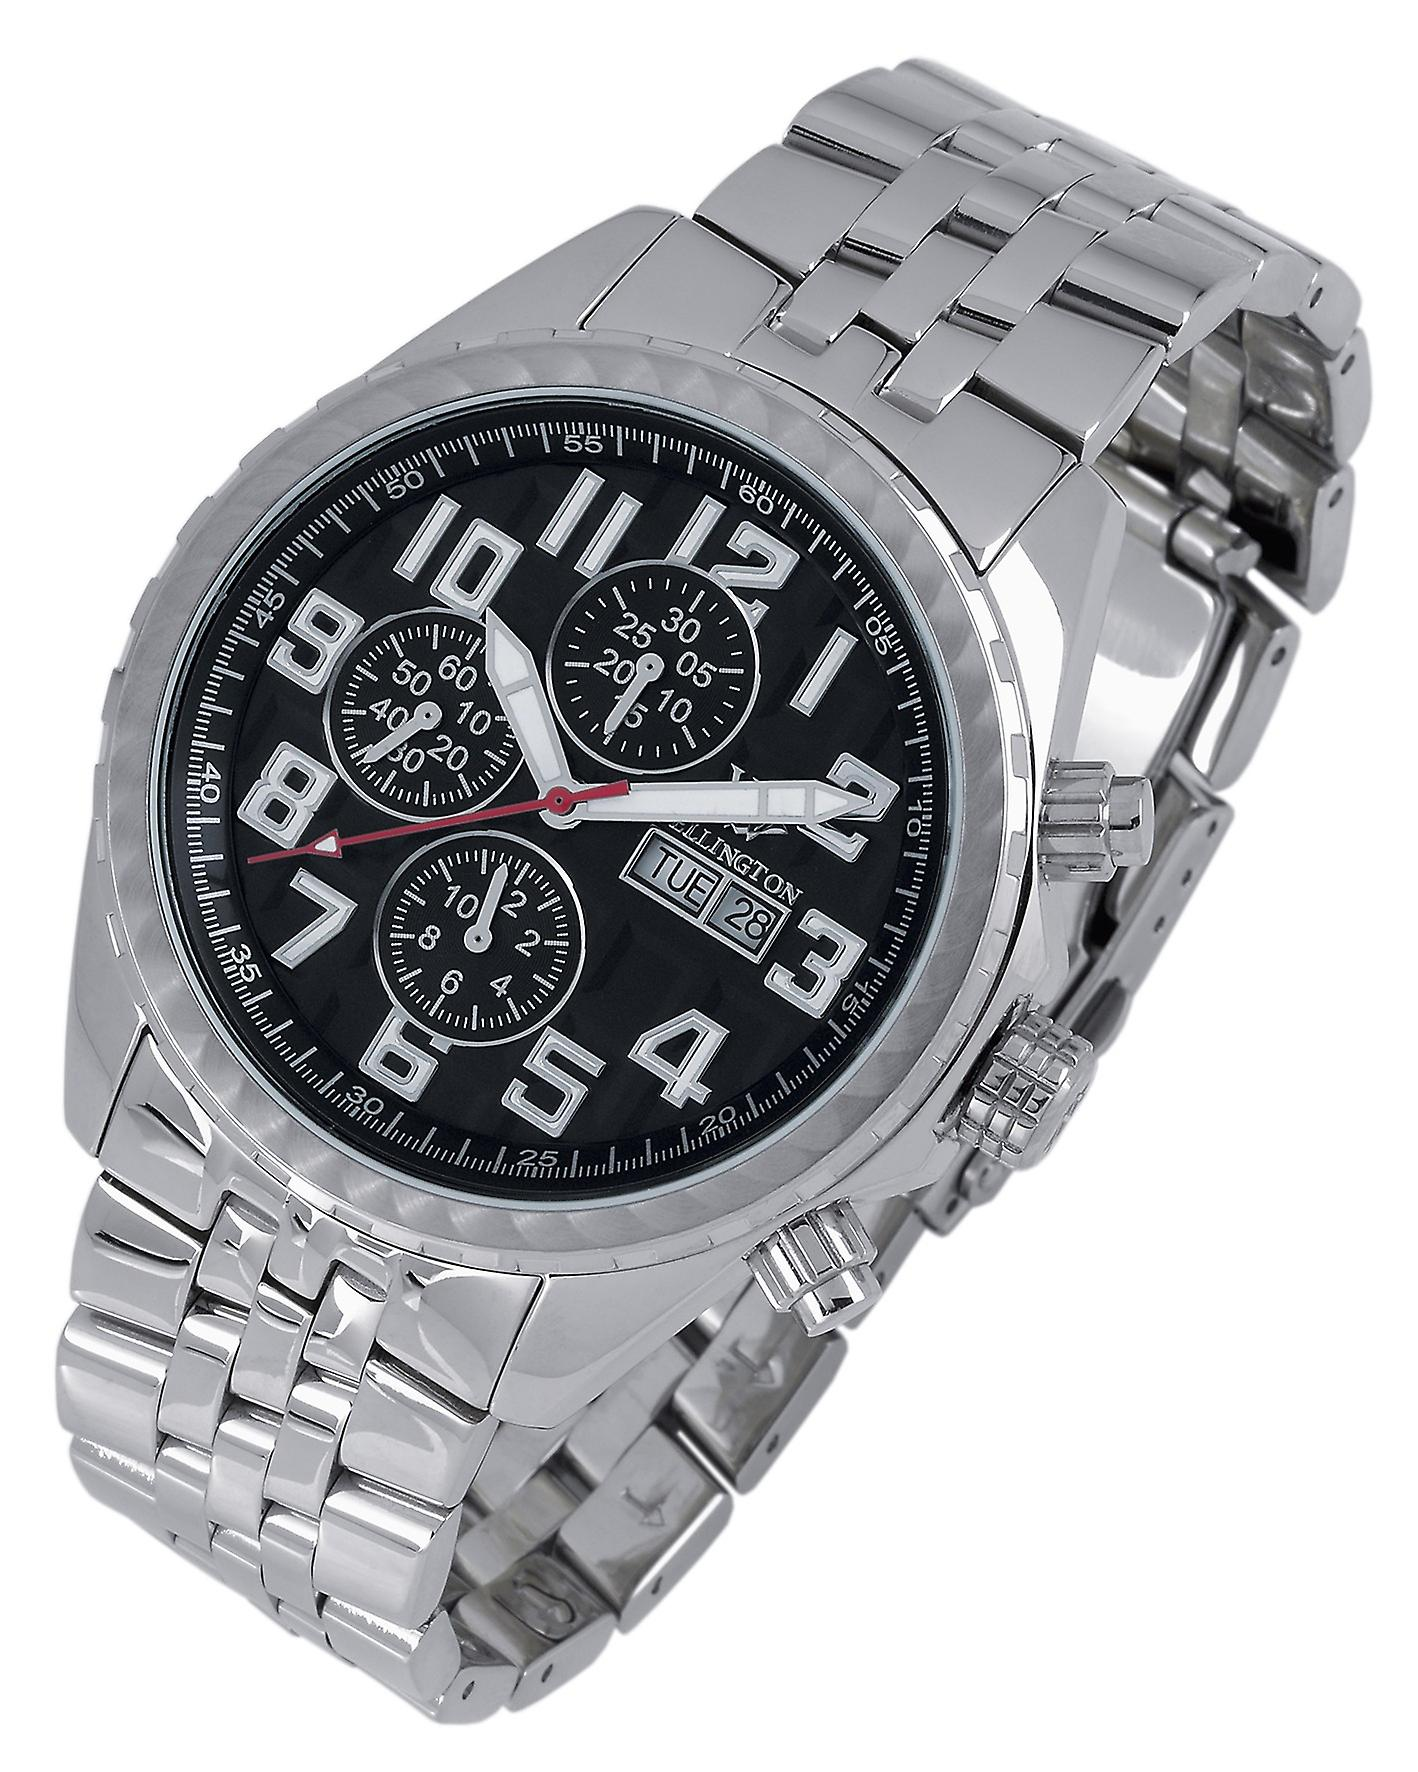 Wellington Skye WN112-121 - Gents Automatic Chronograph